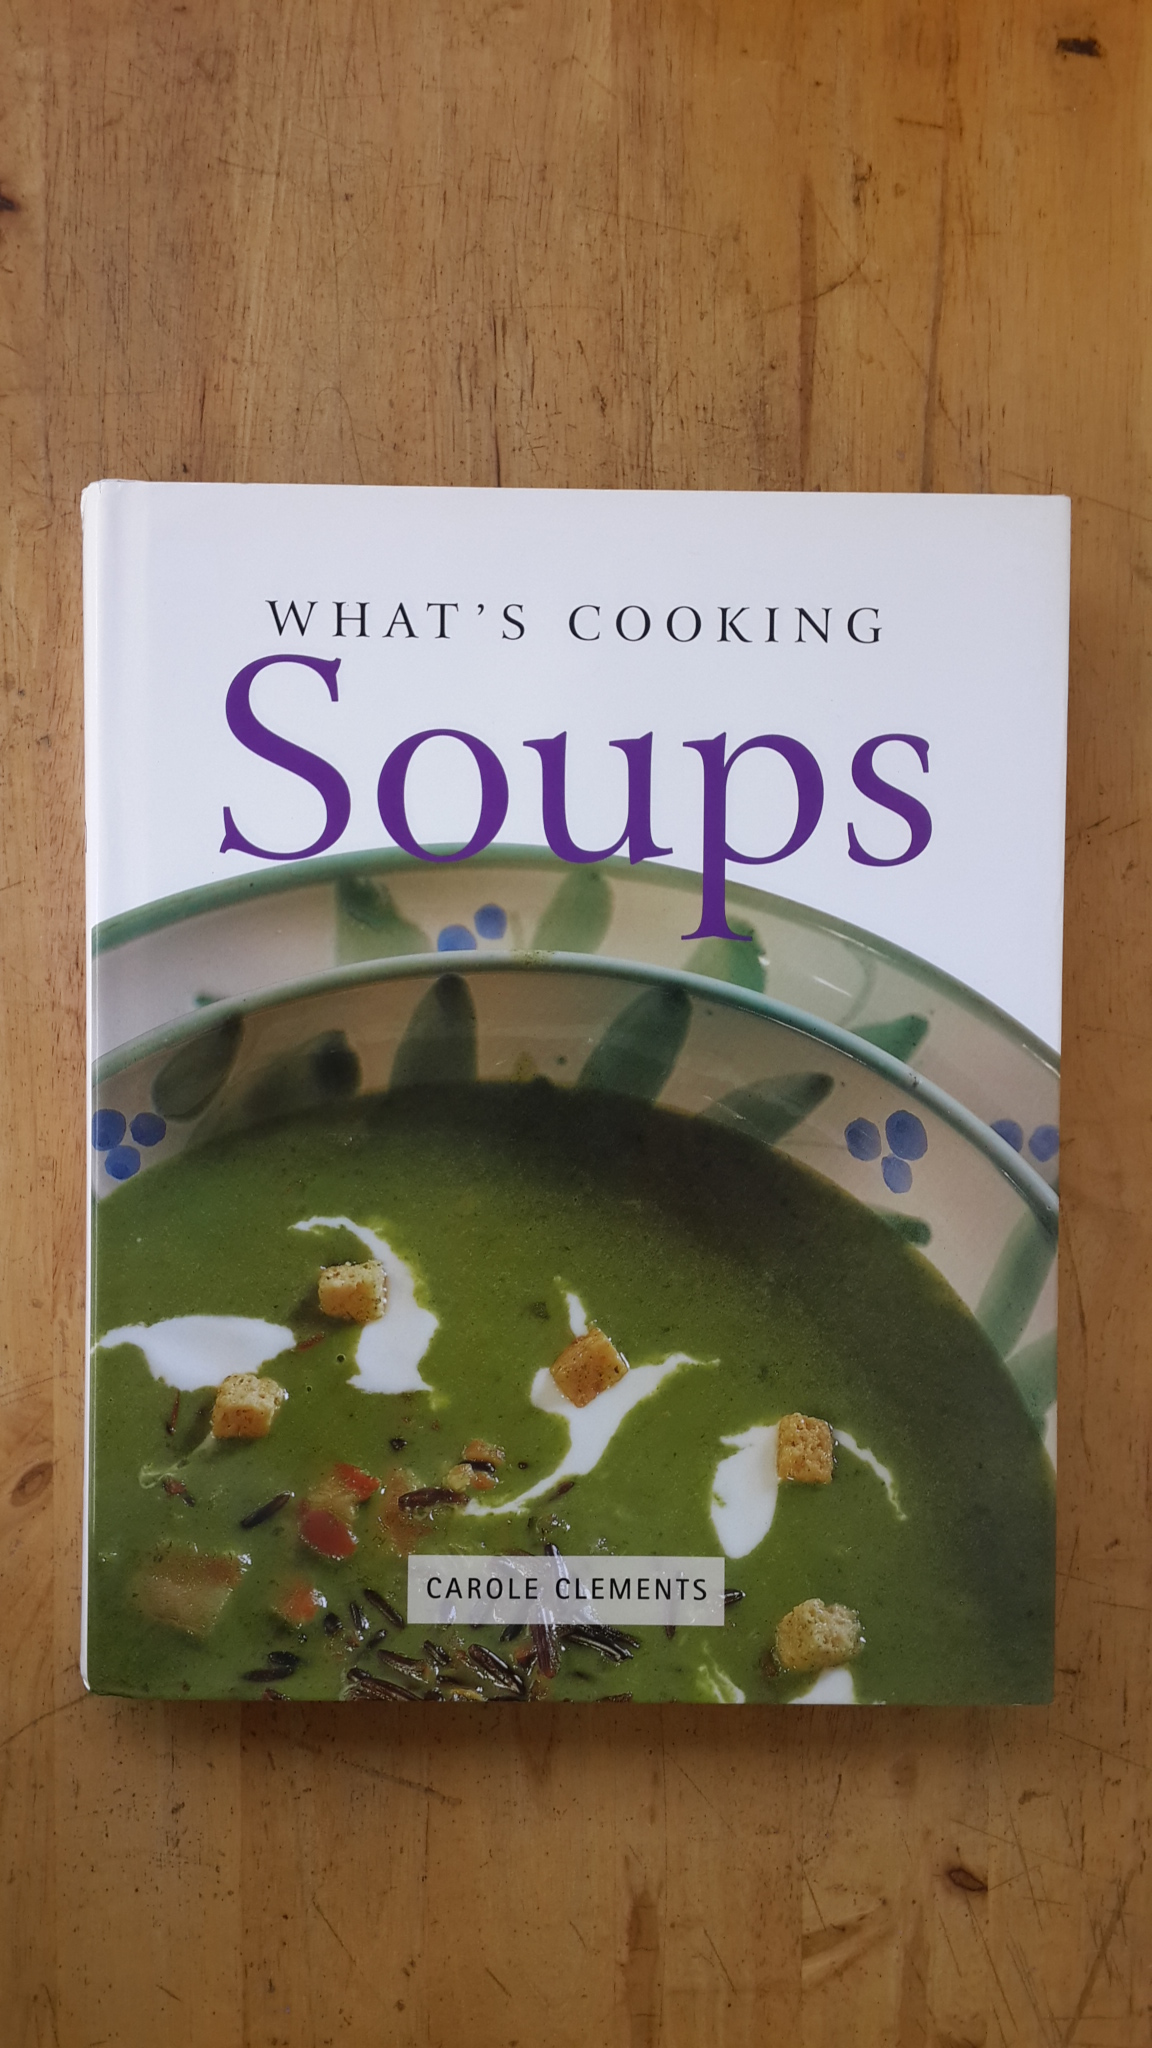 WHAT'S COOKING SOUPS / CAROLE CLEMENTS